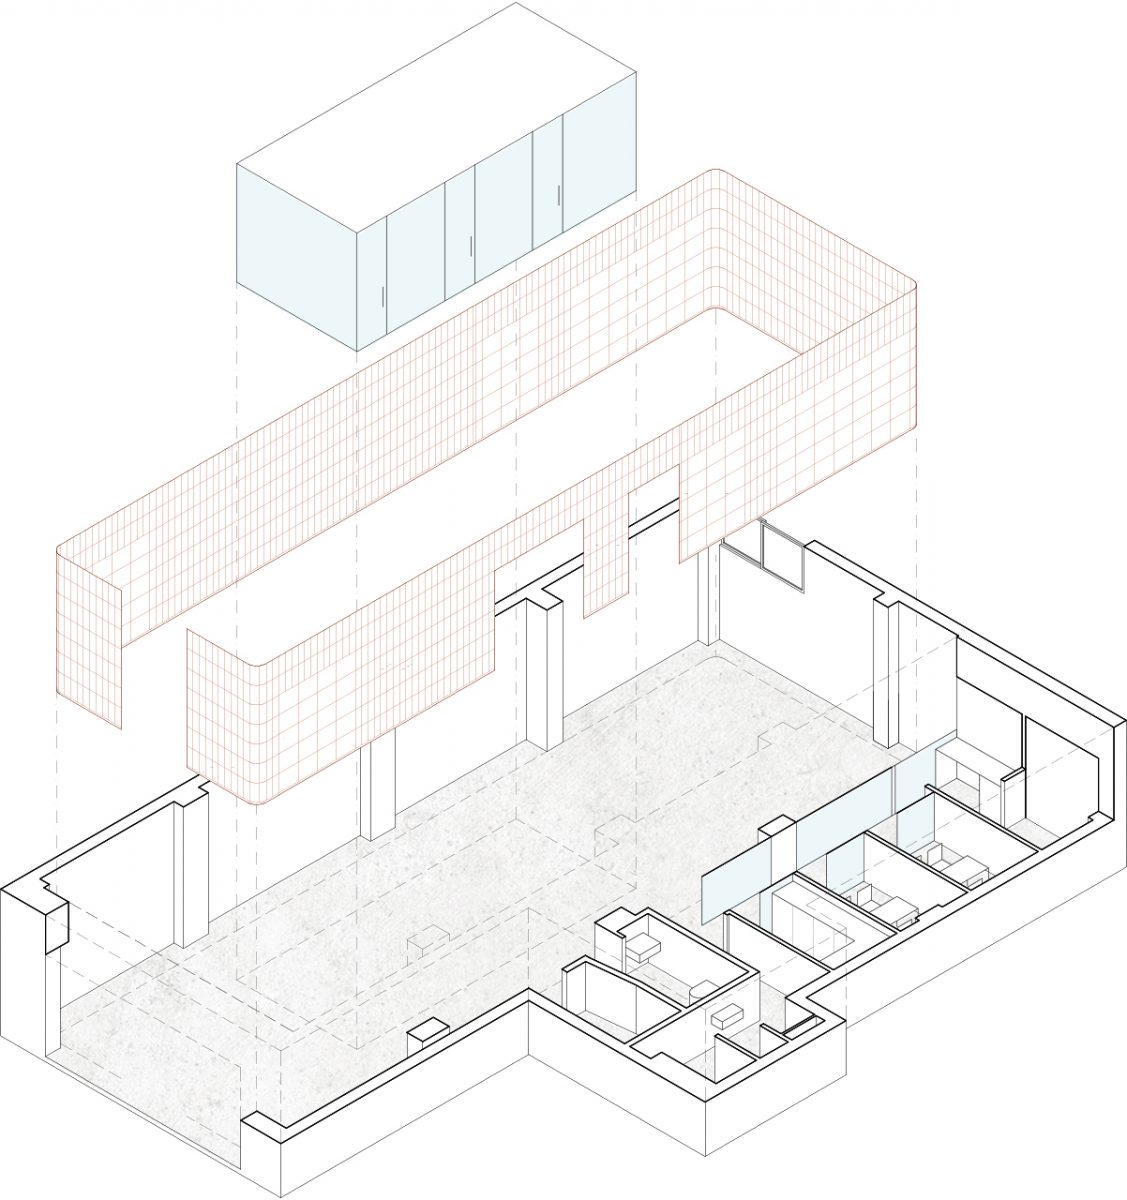 Axonometric view of the clinic